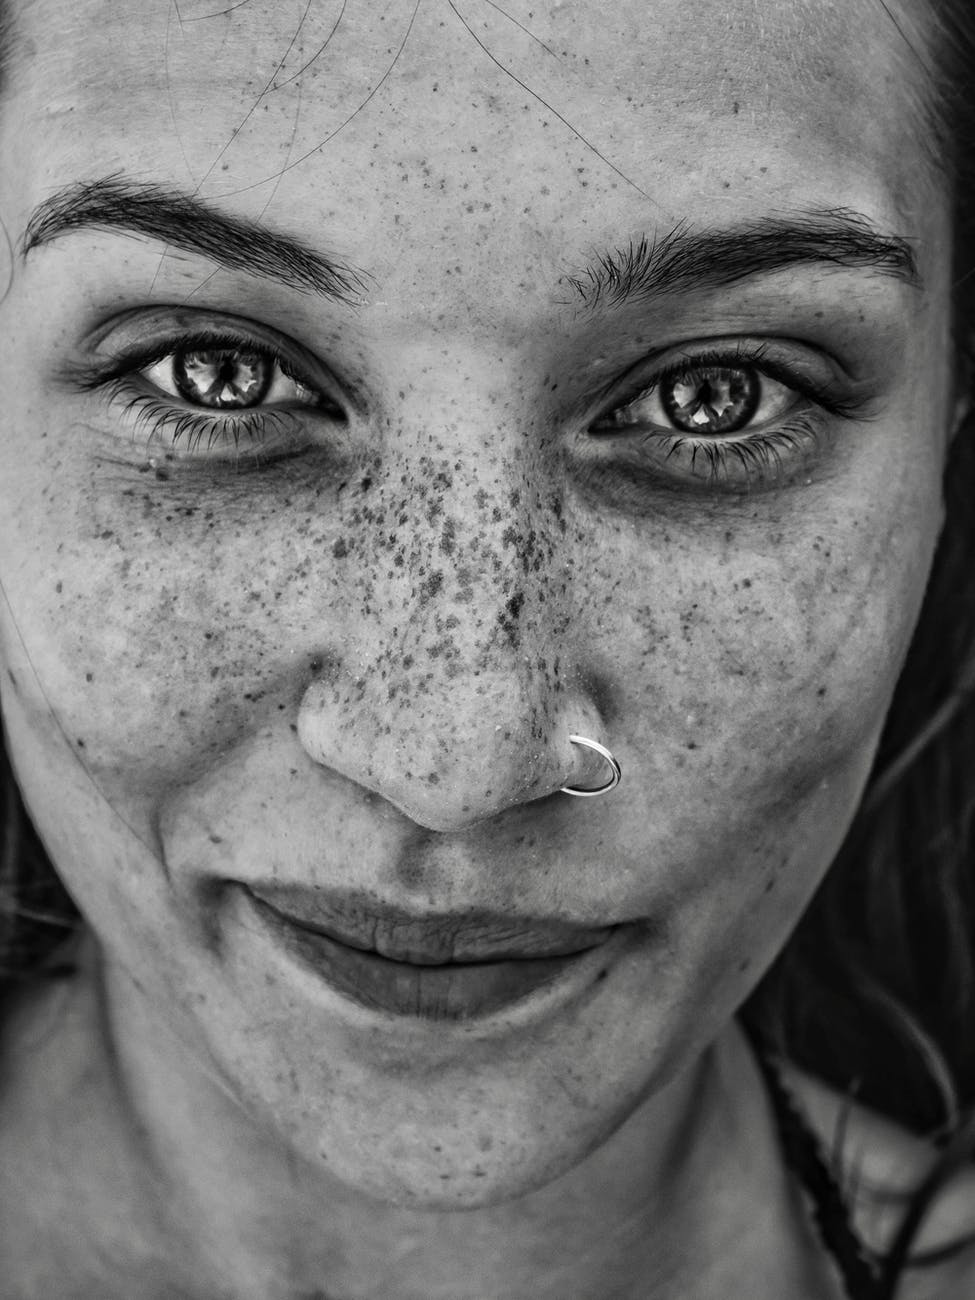 cheerful woman with freckles looking at camera